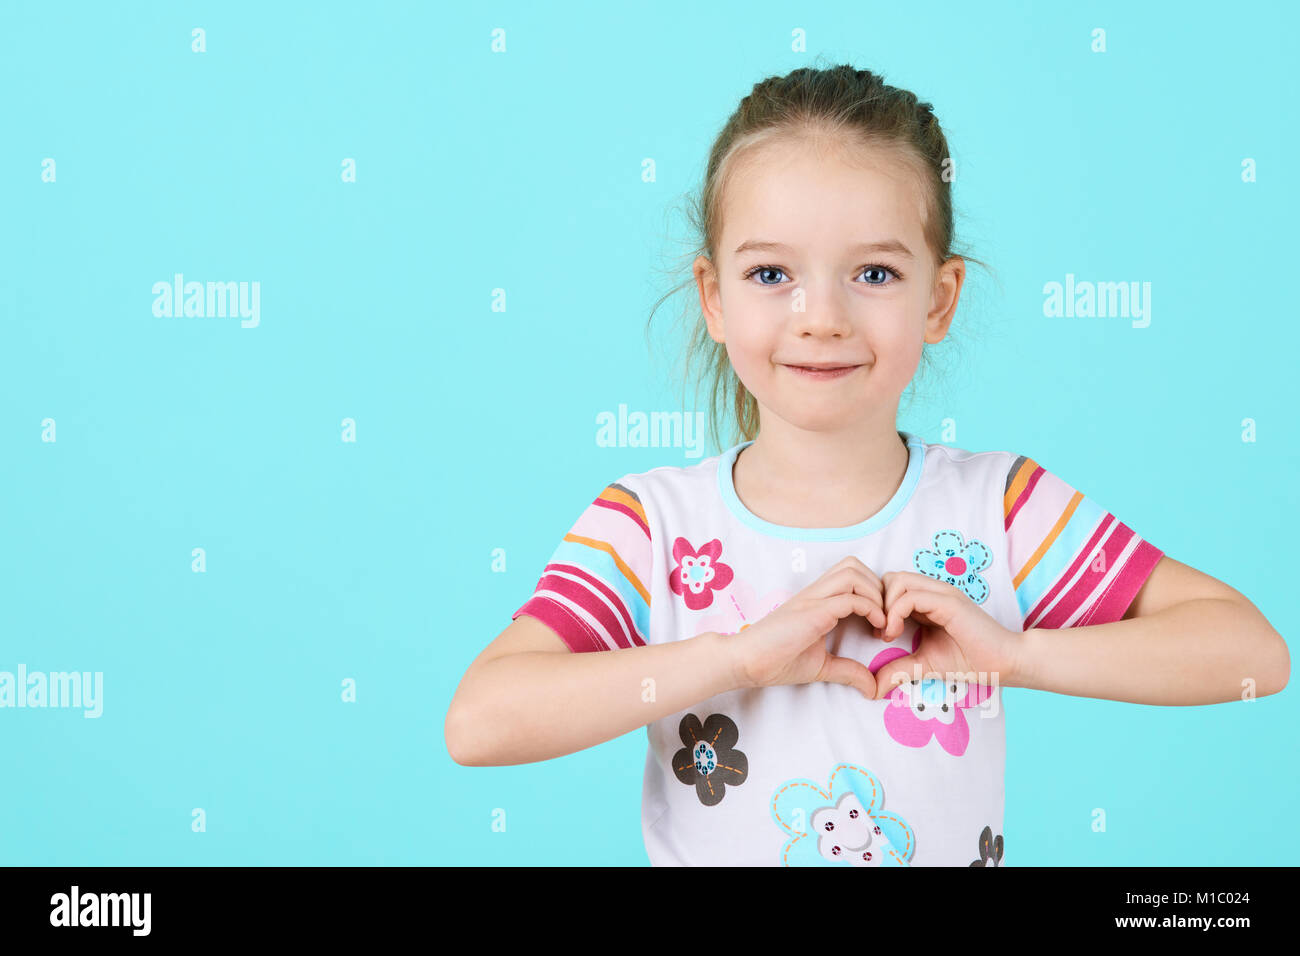 Children, Charity, Healthcare, Adoption Concept. Smiling little girl making heart-shape gesture over candy blue - Stock Image